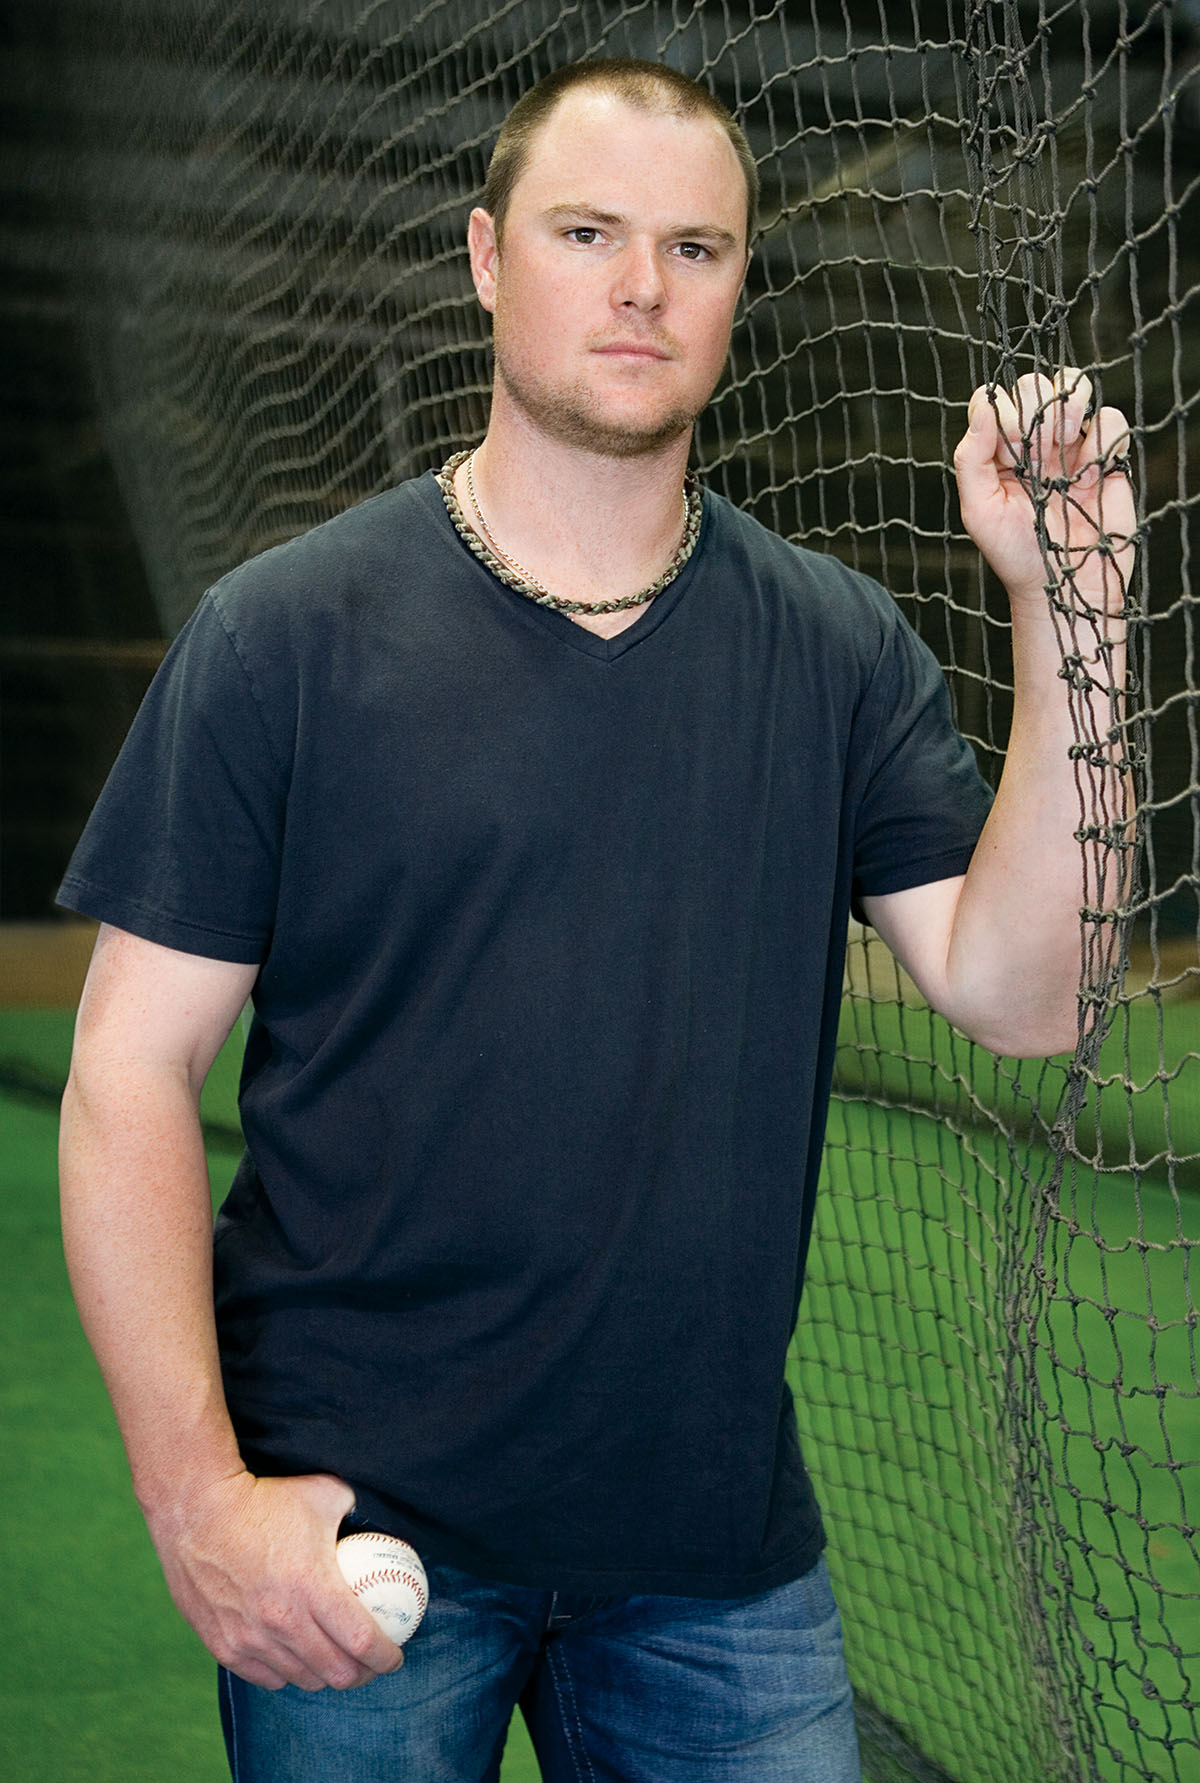 Jon Lester's job this year: lead the Sox to glory. / Photograph by Sadie Dayton.